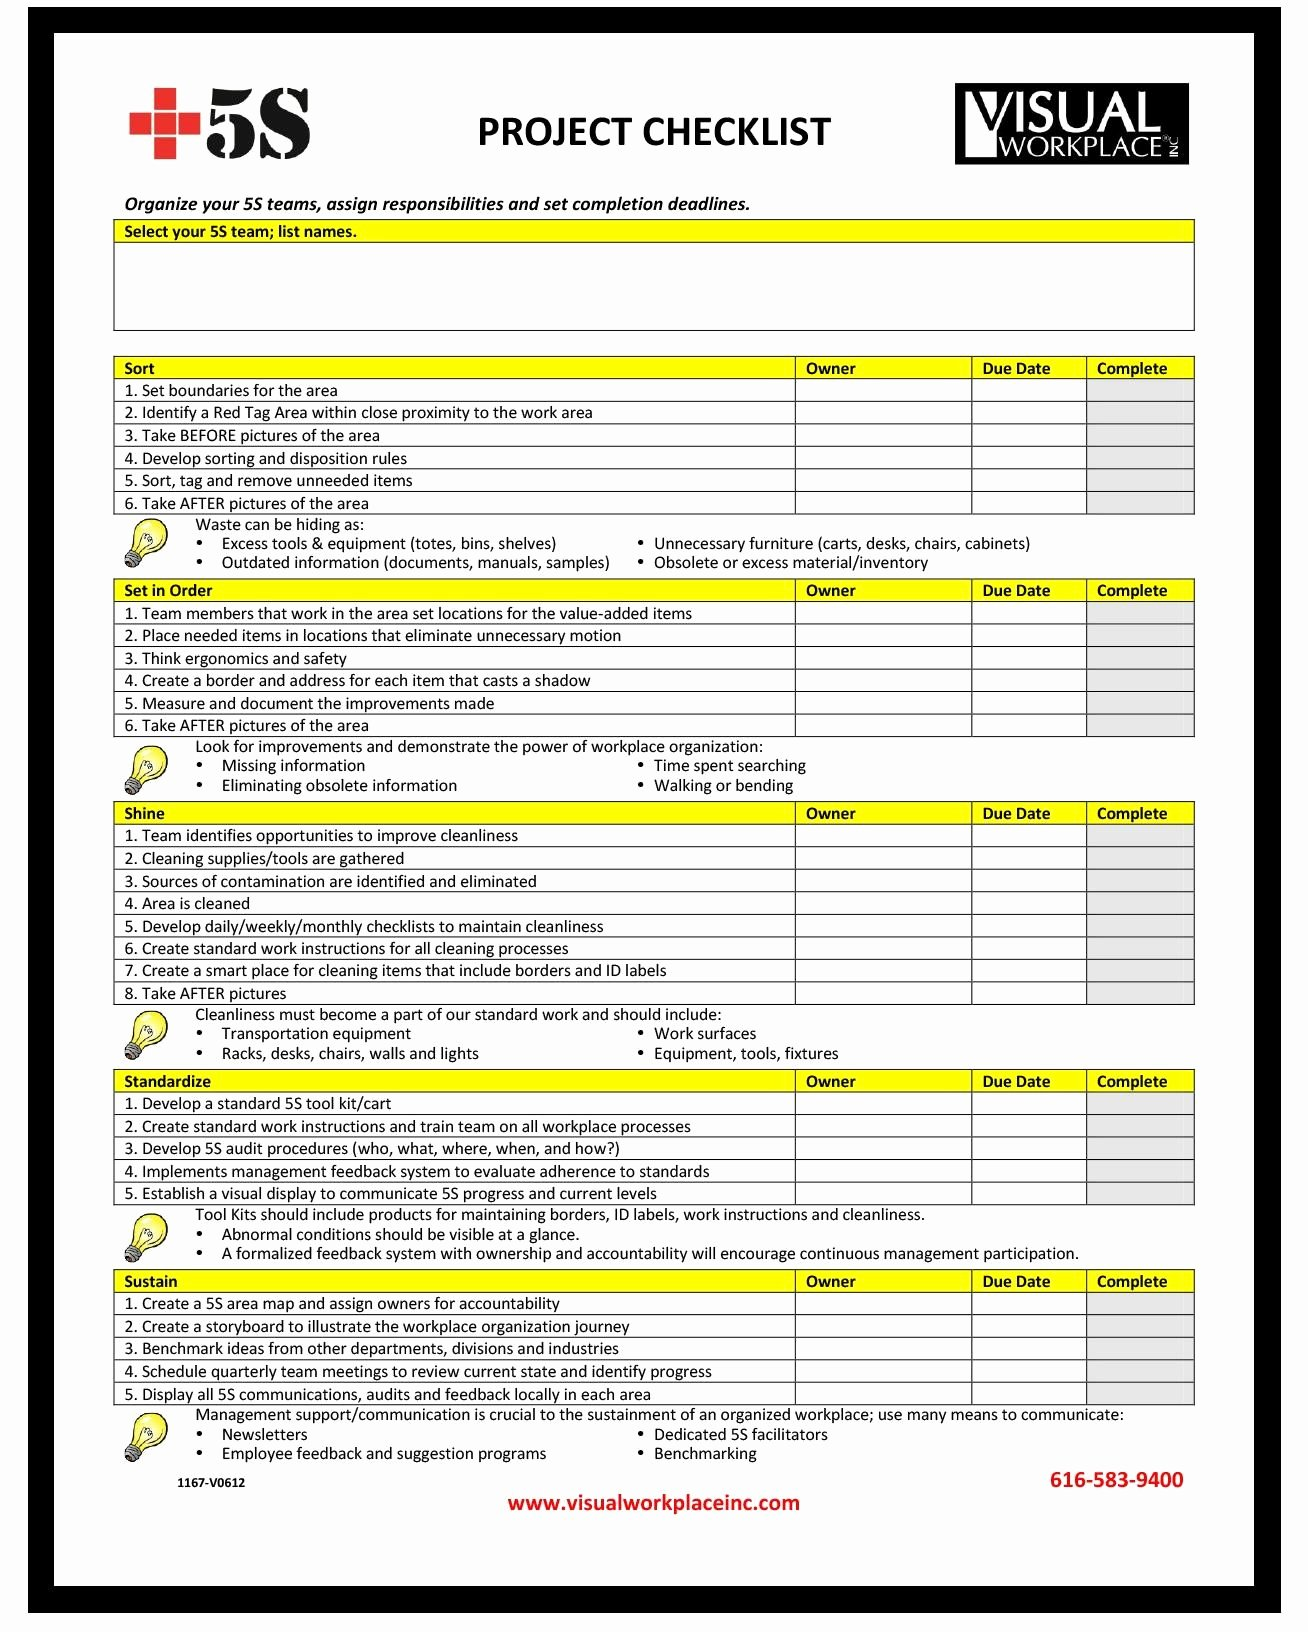 Excel Project Checklist Template Luxury Checklist Project Checklist Template